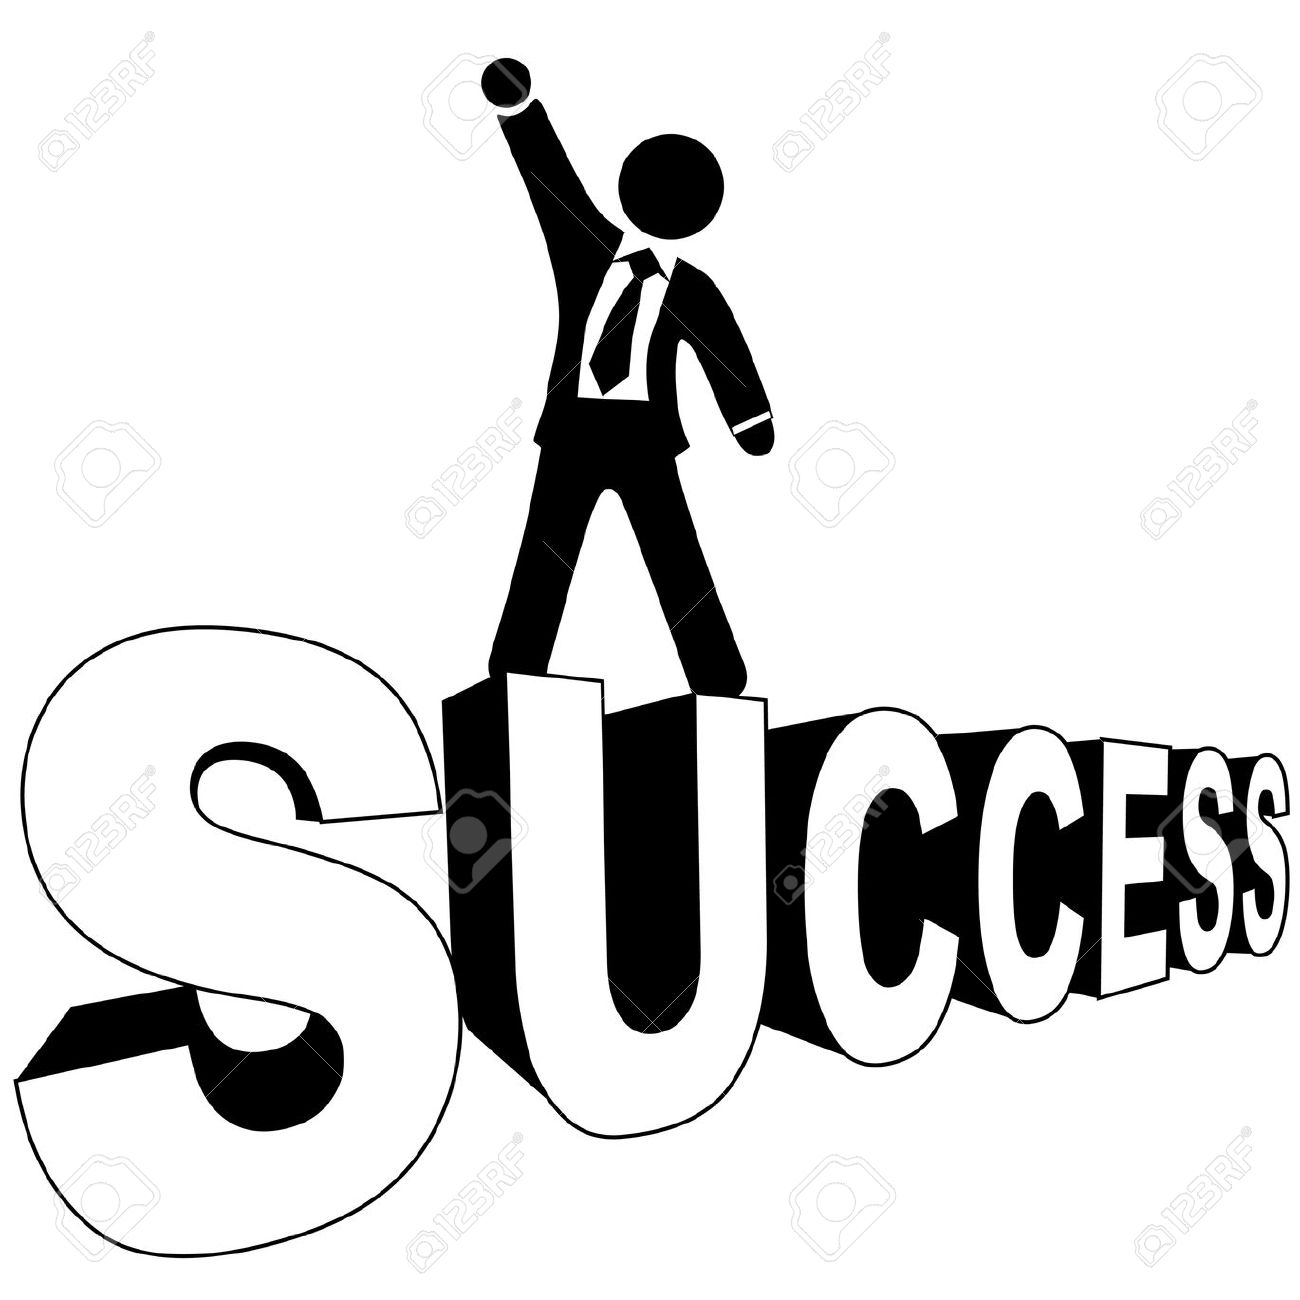 Successful man clipart jpg